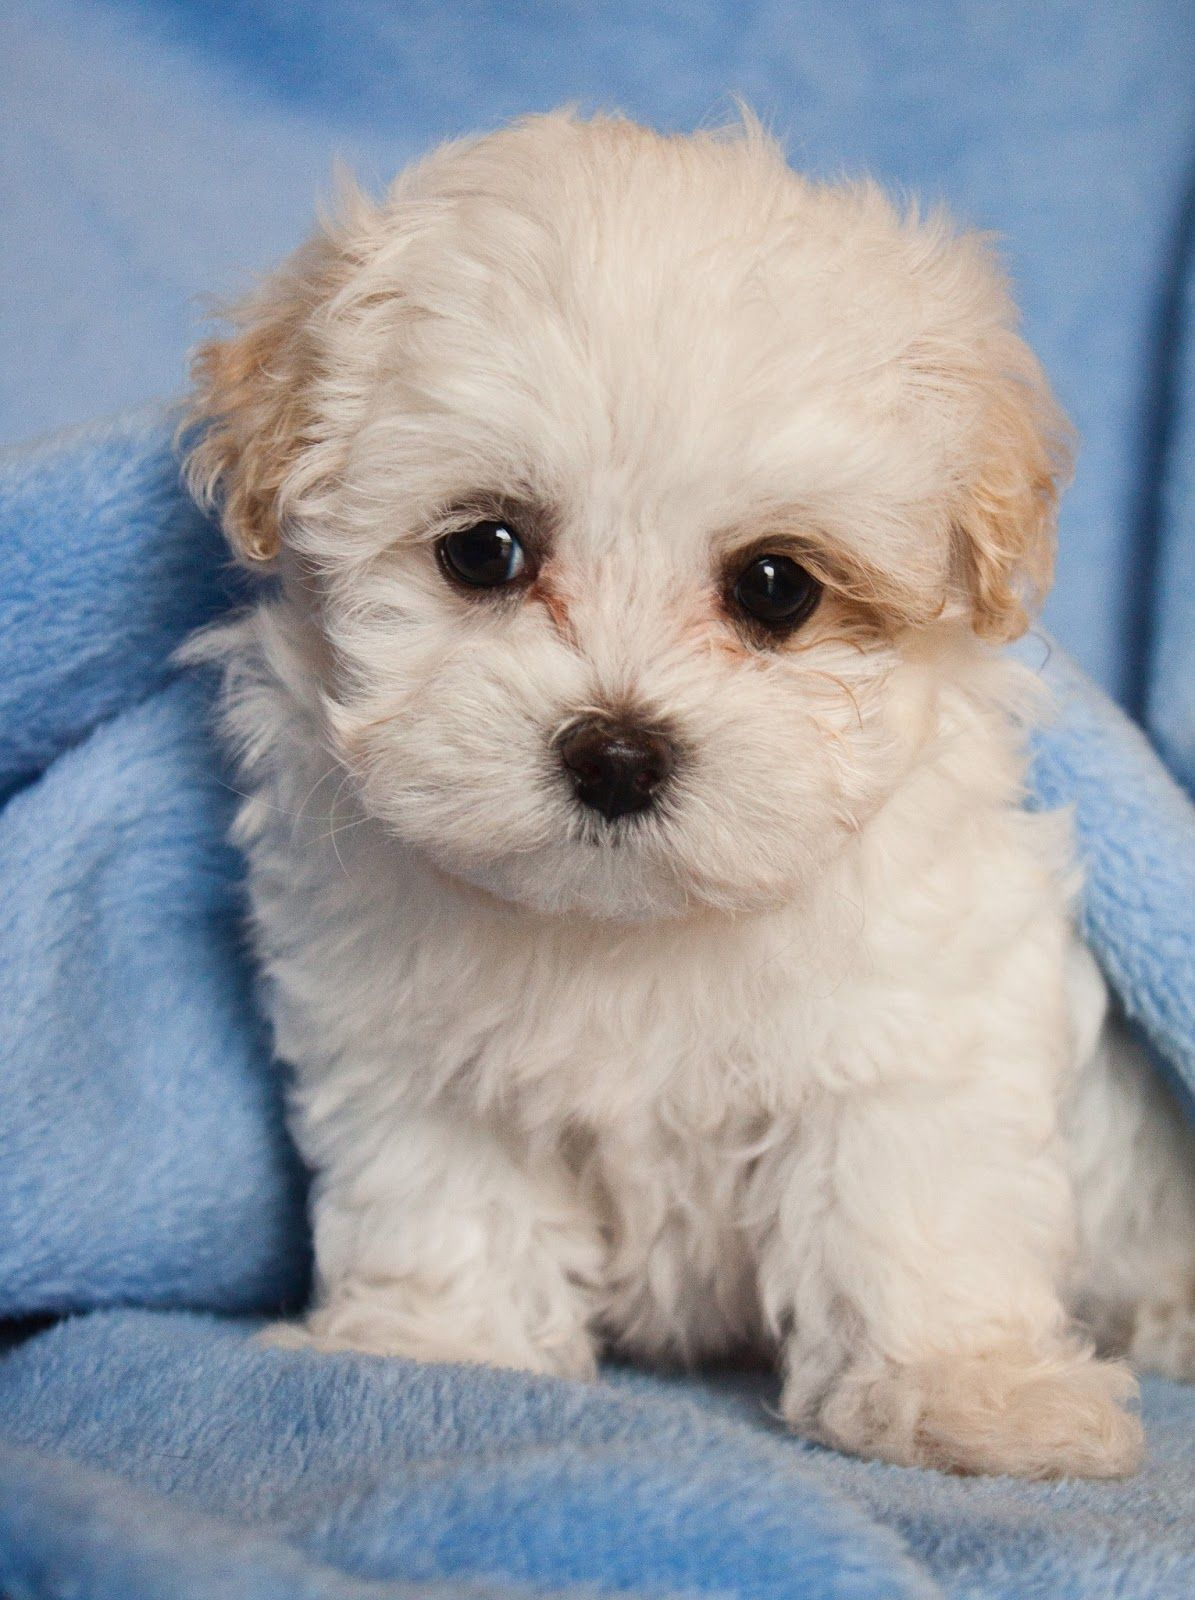 Tips On Teaching Your Dog How To Walk Properly Dogs Maltipoo Puppy Puppies